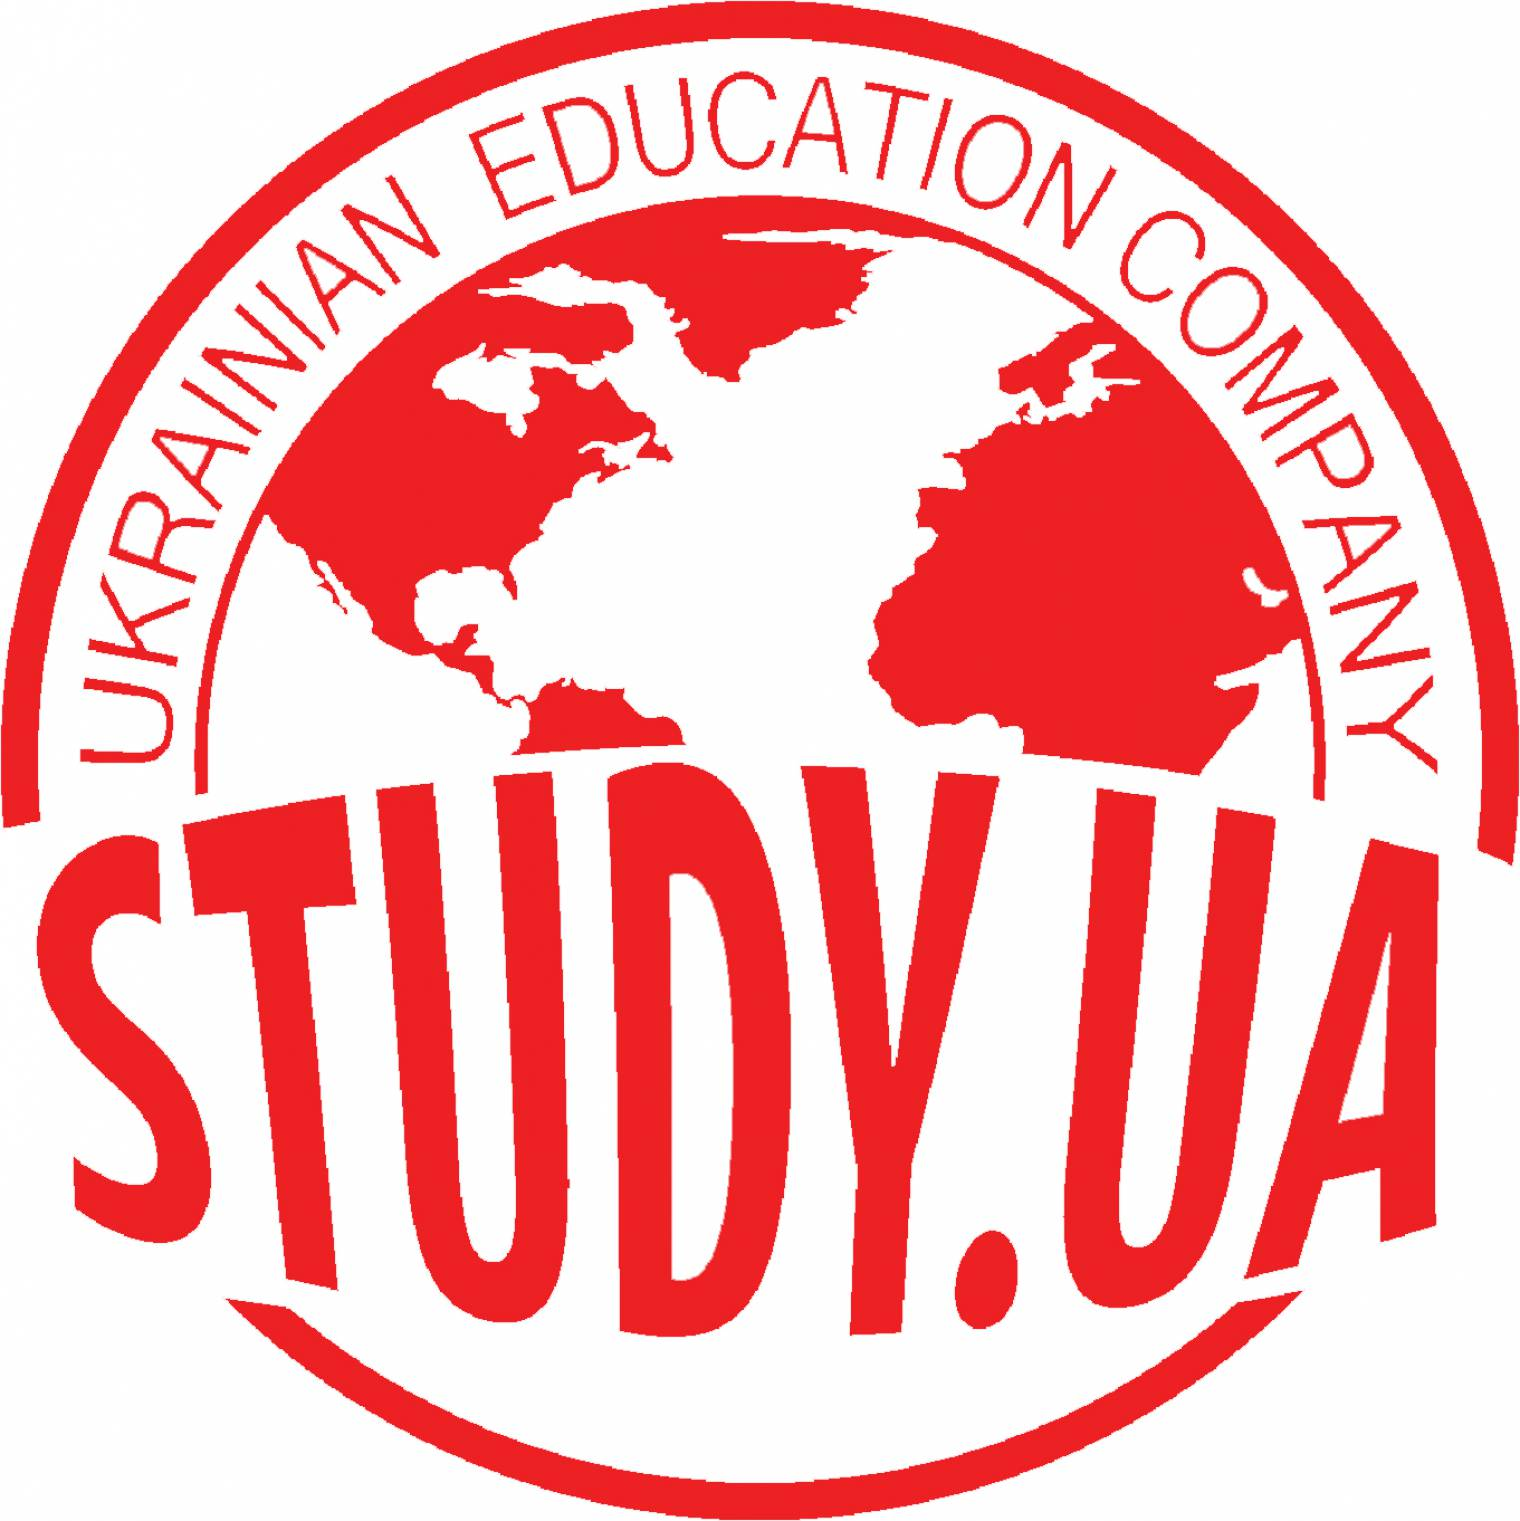 Member highlight: AUpairUA Agency TM STUDY.UA